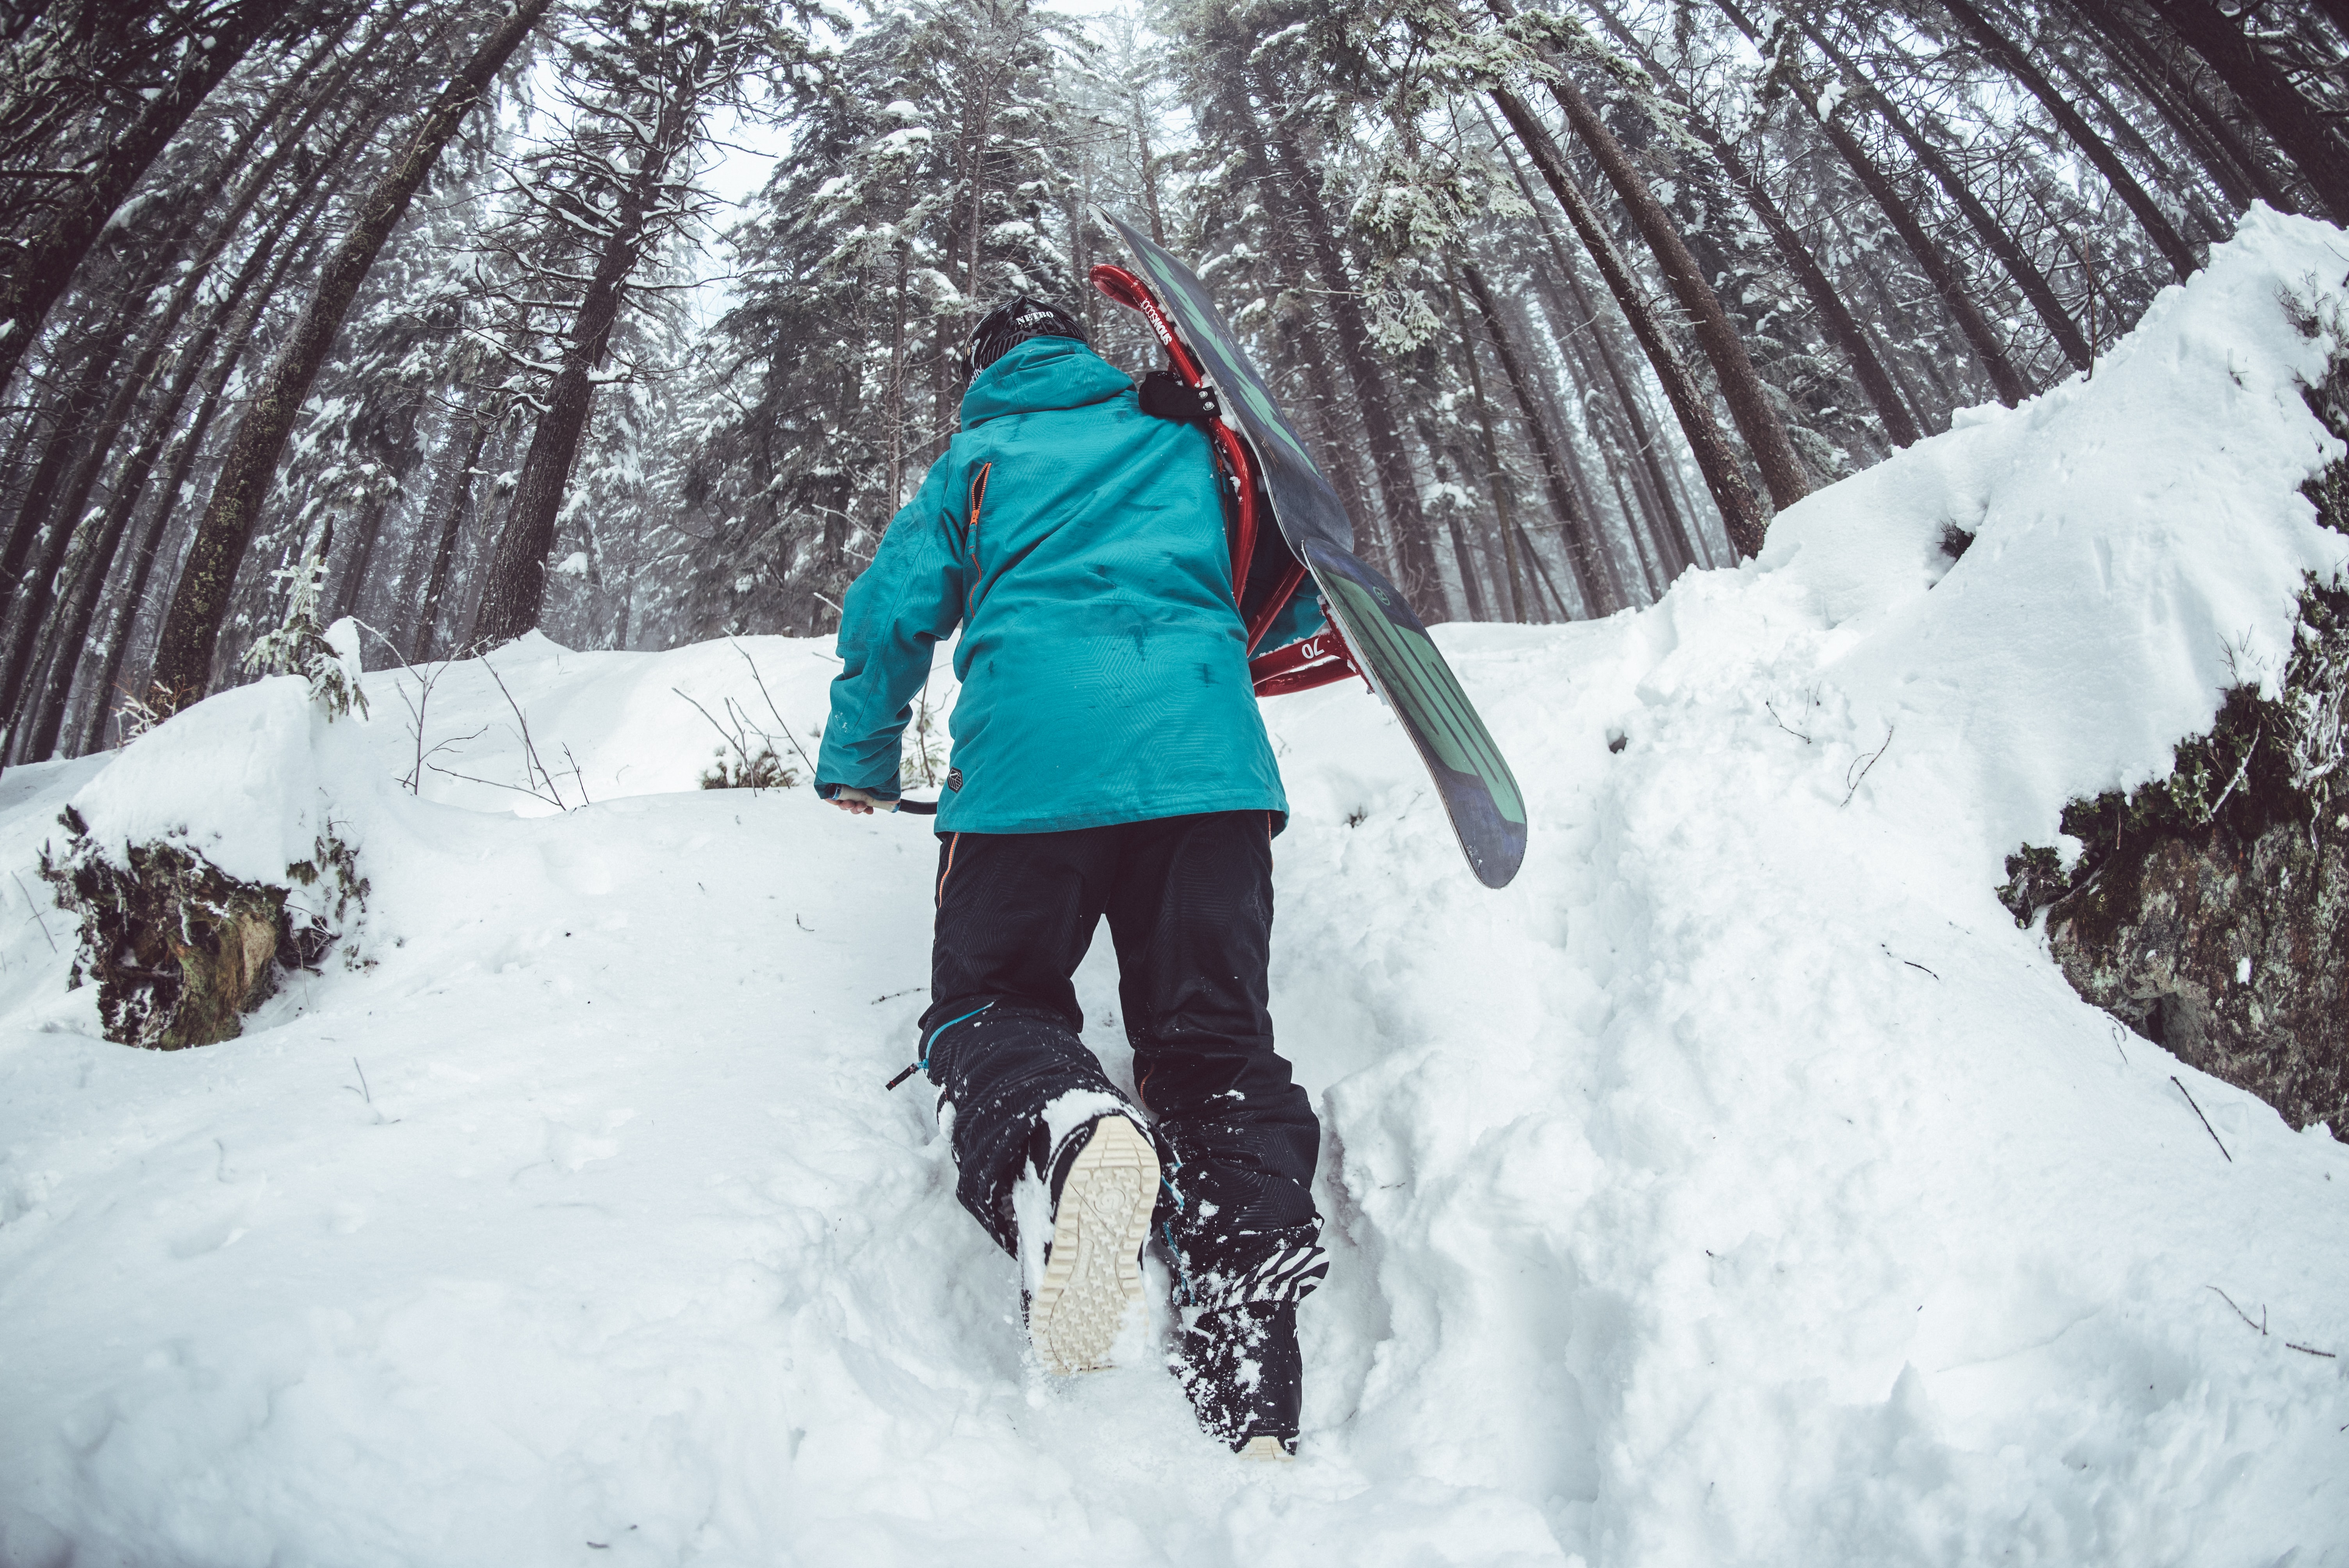 Snowboarder hiking up a trail with snow covered trees